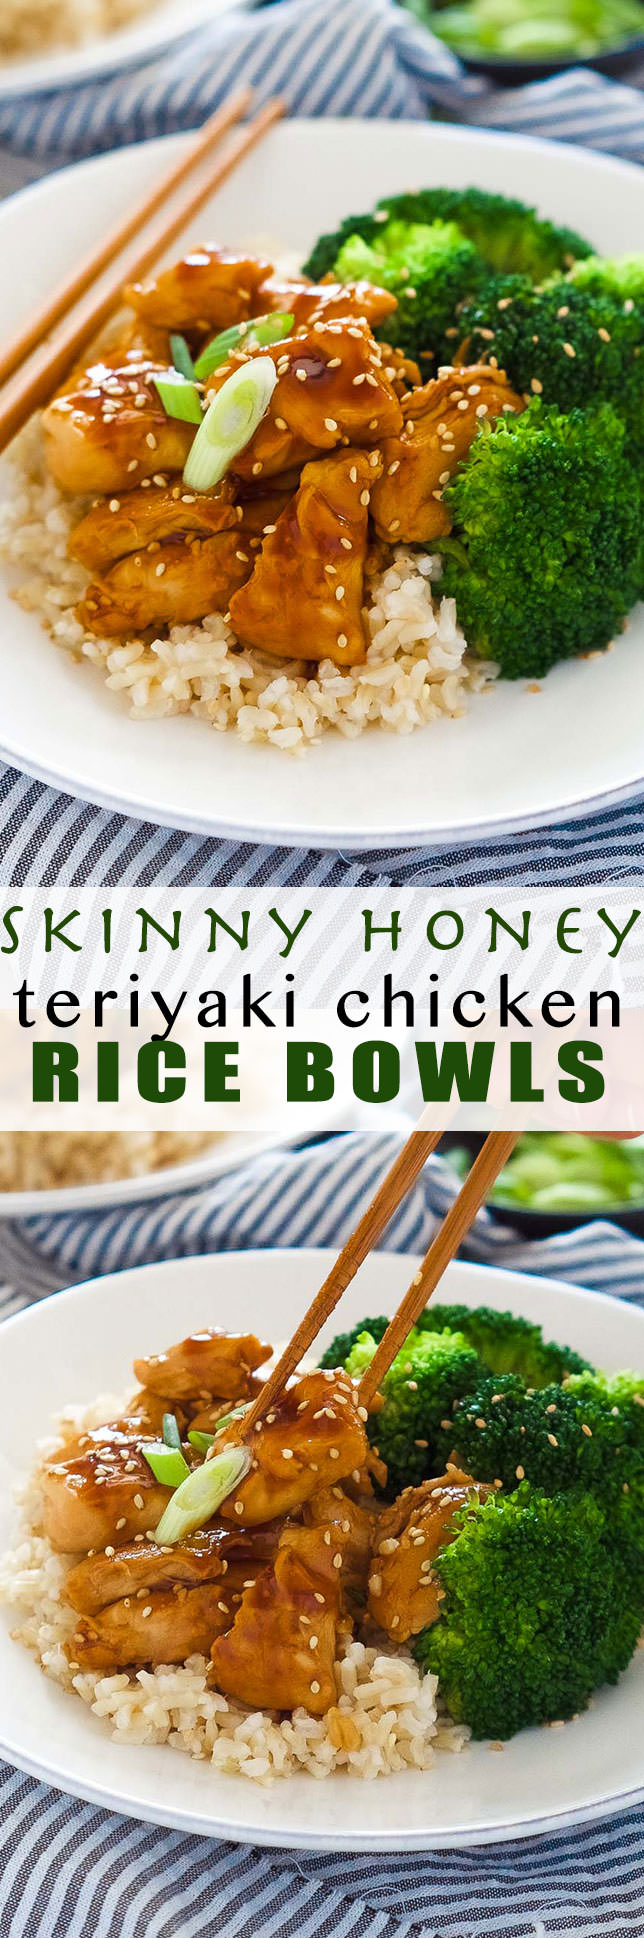 This Honey Teriyaki Chicken Recipe is a quick dinner idea that is family friendly and budget friendly! It only requires a few ingredients and it is perfect for meal prep! #healthyweeknightdinners #easyasianrecipes #mealpreprecipes #budgetfriendlyrecipes #easydinnerrecipes